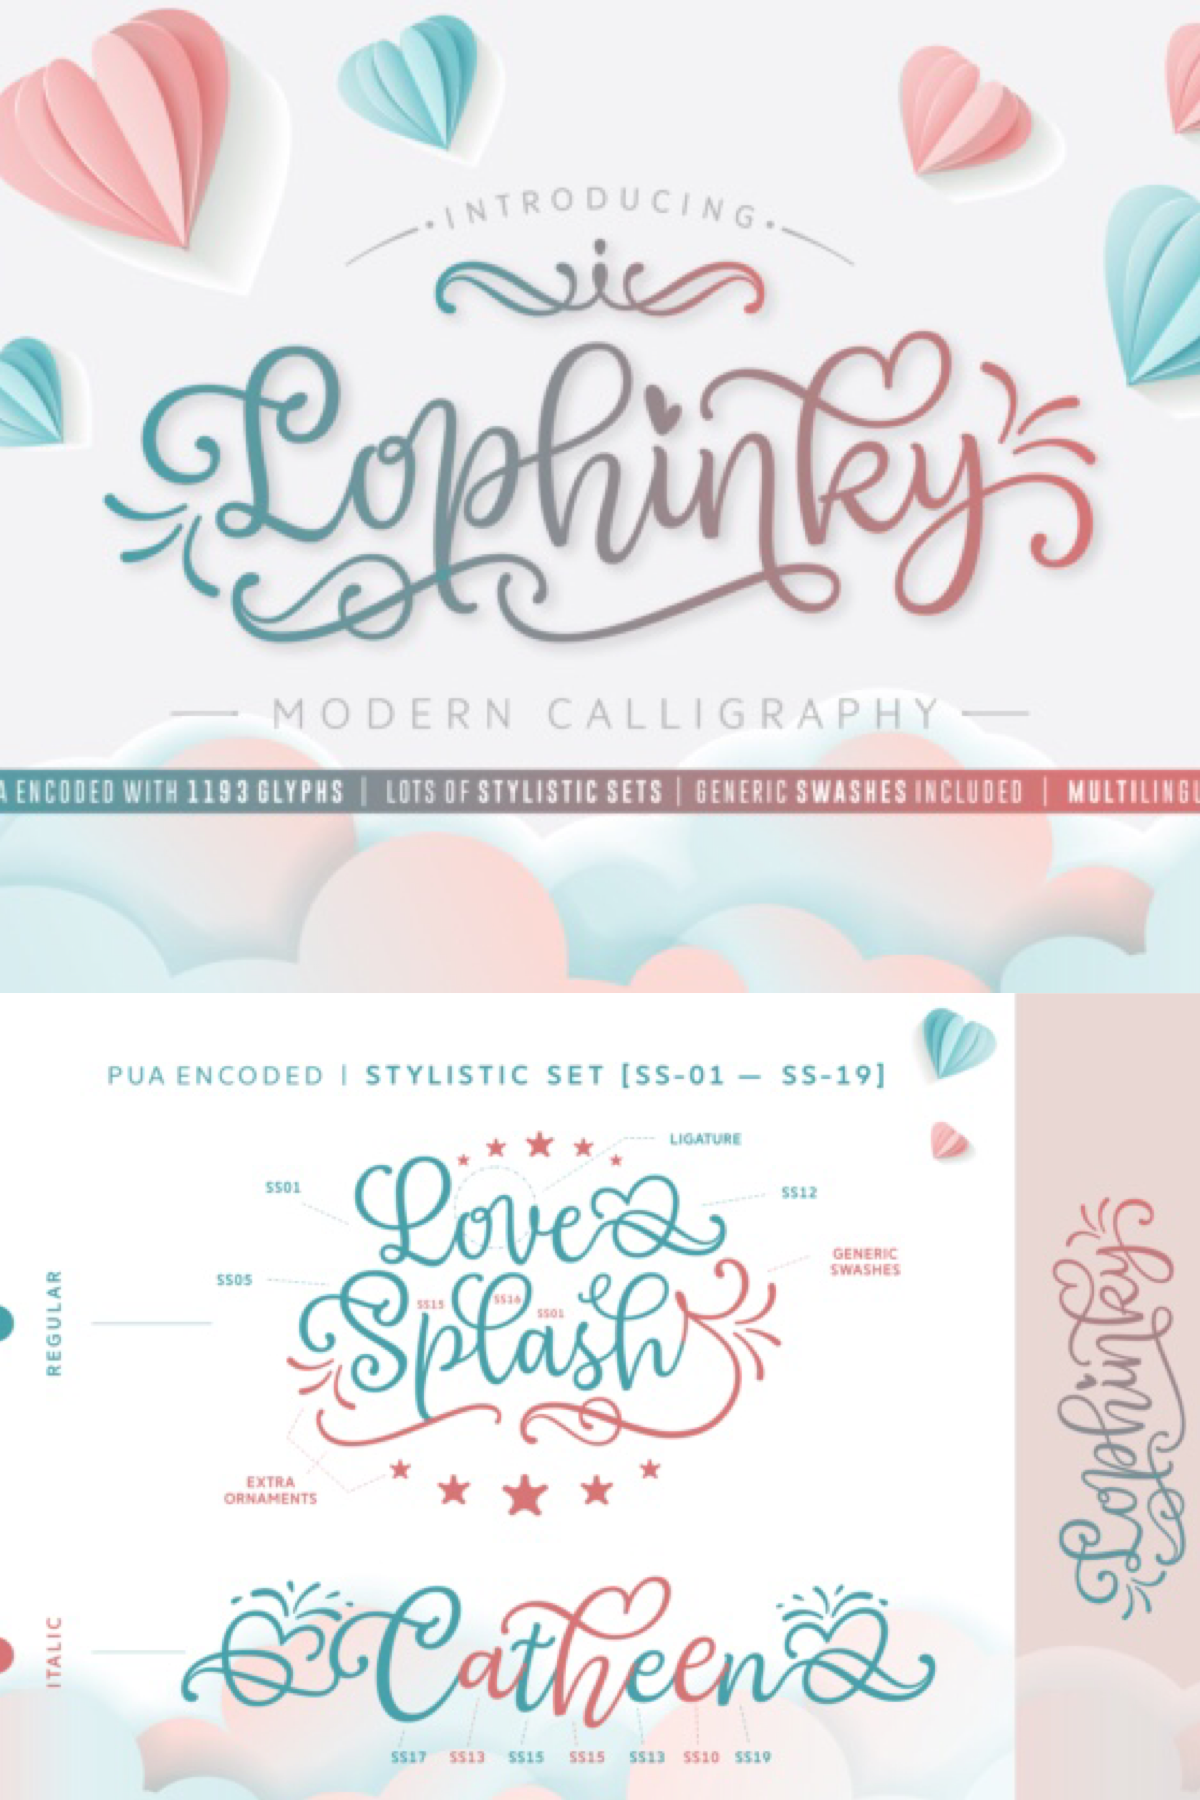 Lophinky (Font) by Situjuh Creative, Clip art freebies